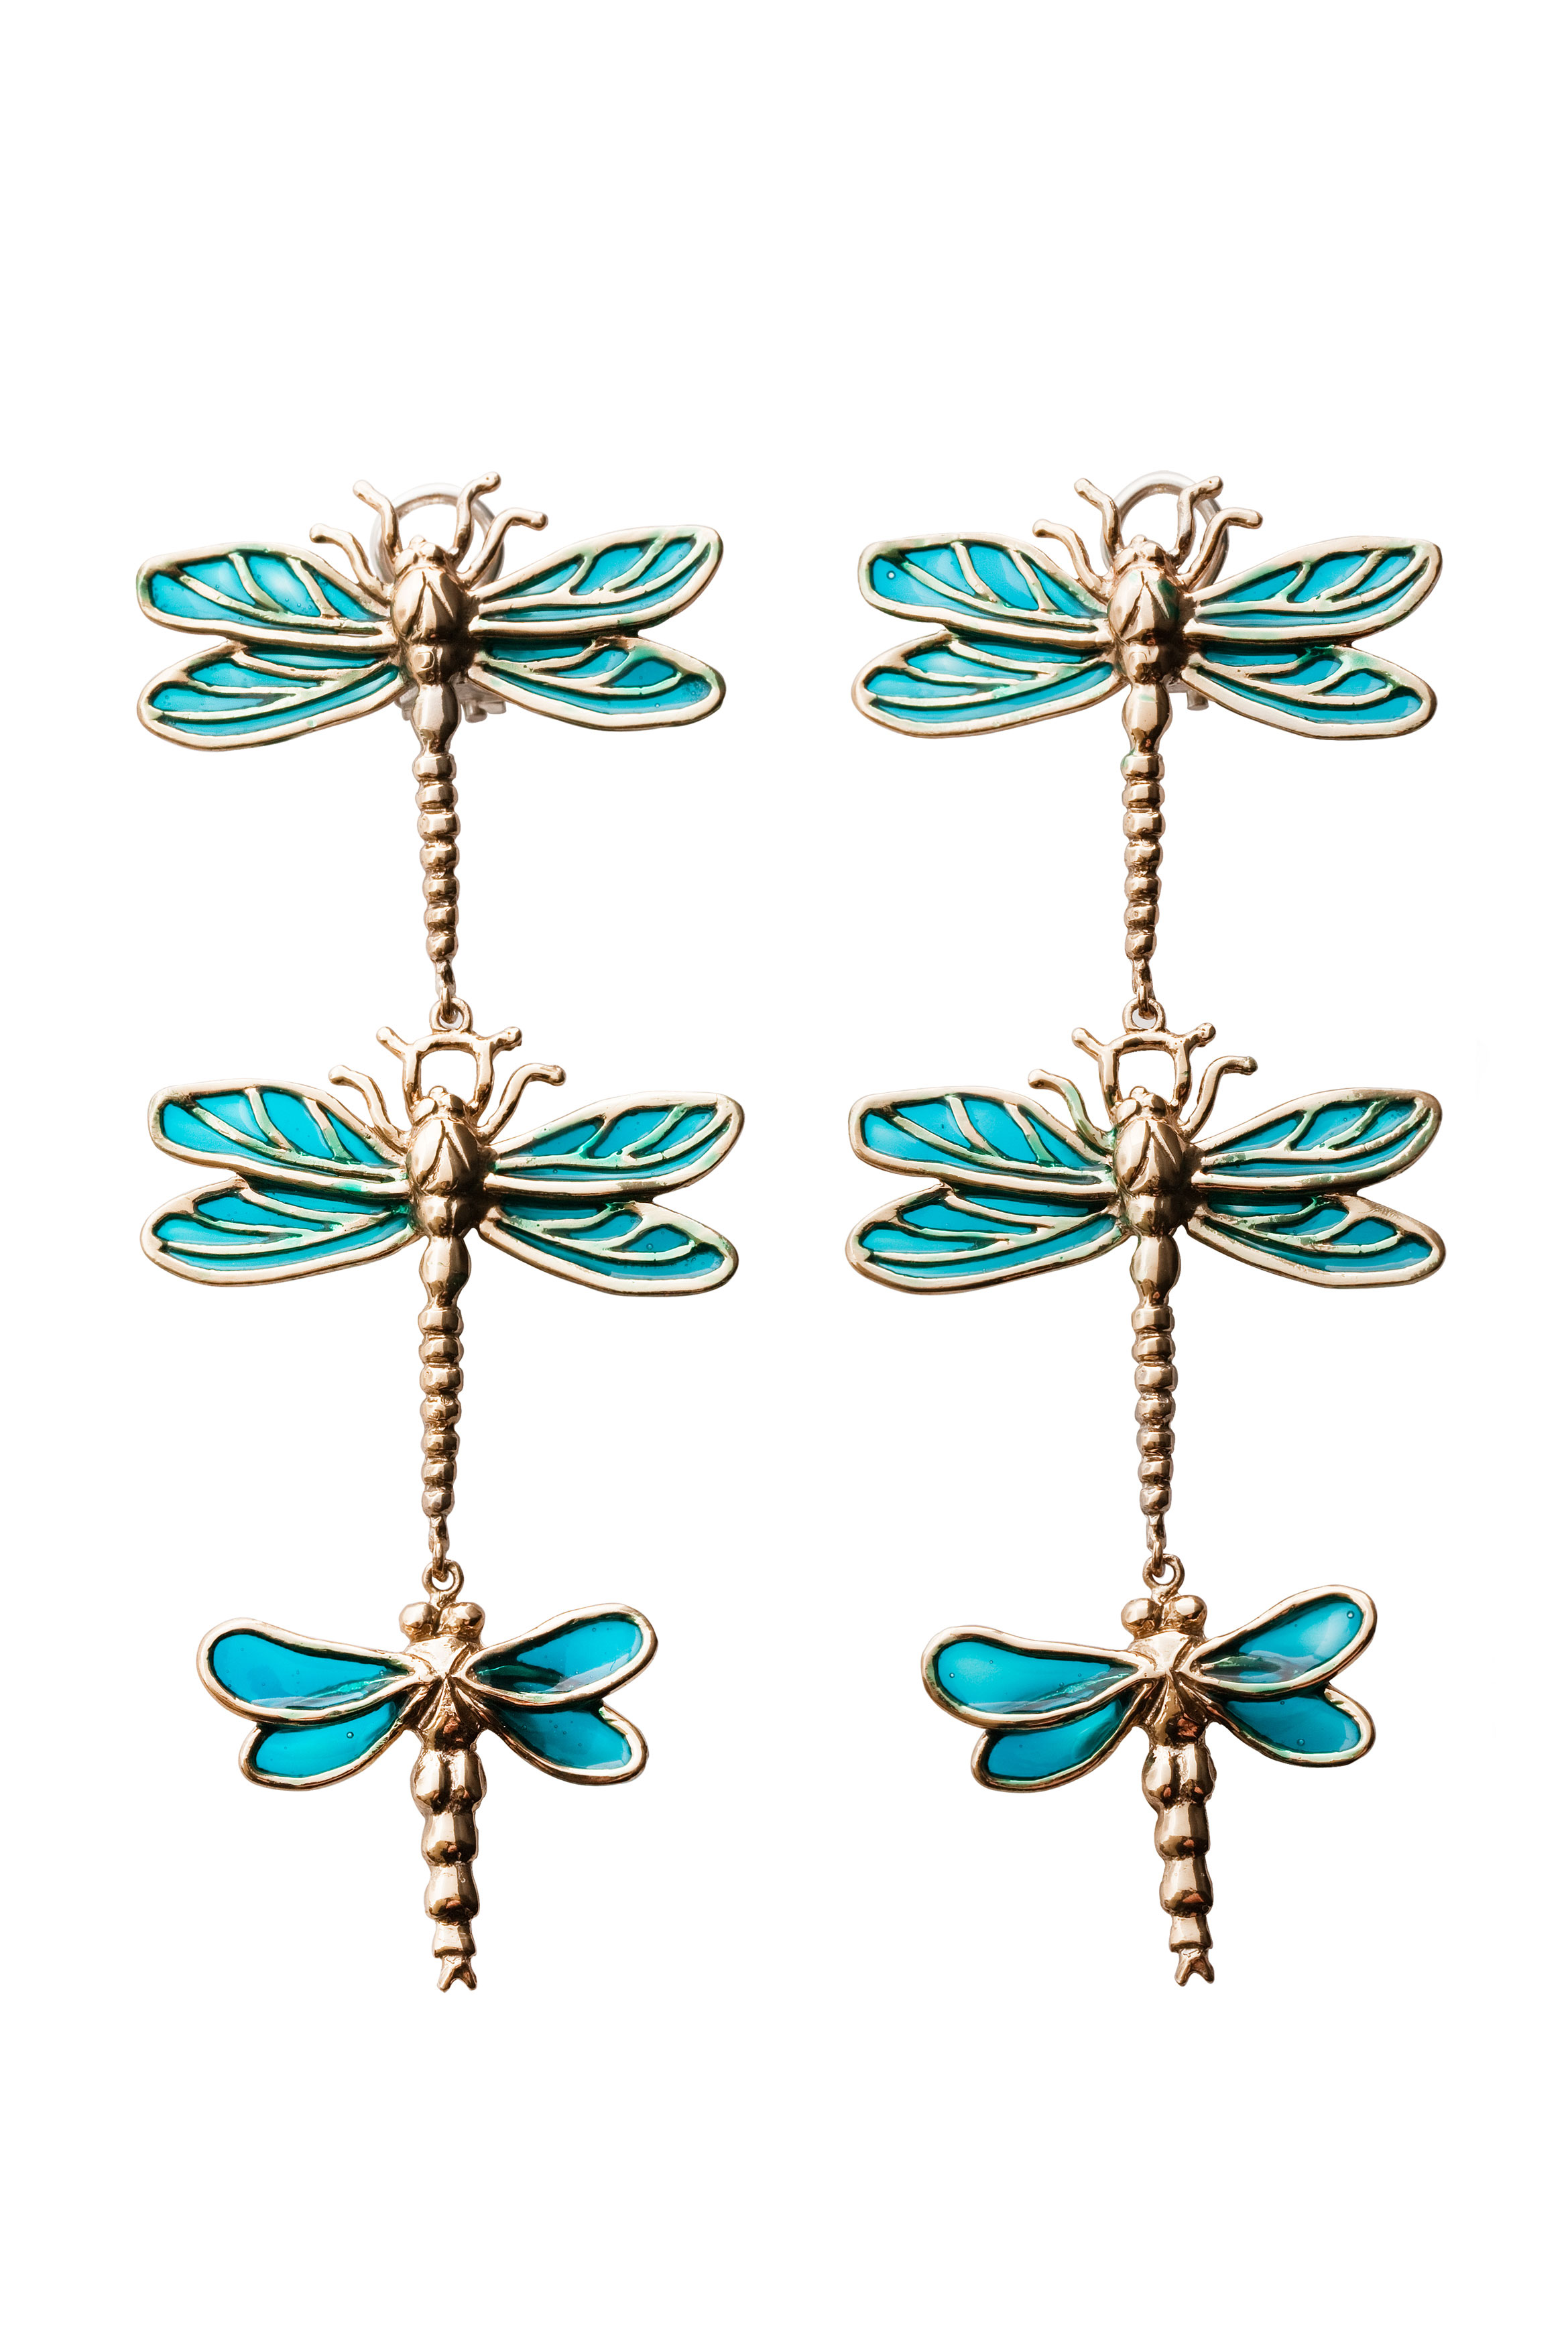 3 big dragonflies bronze earrings with enamel